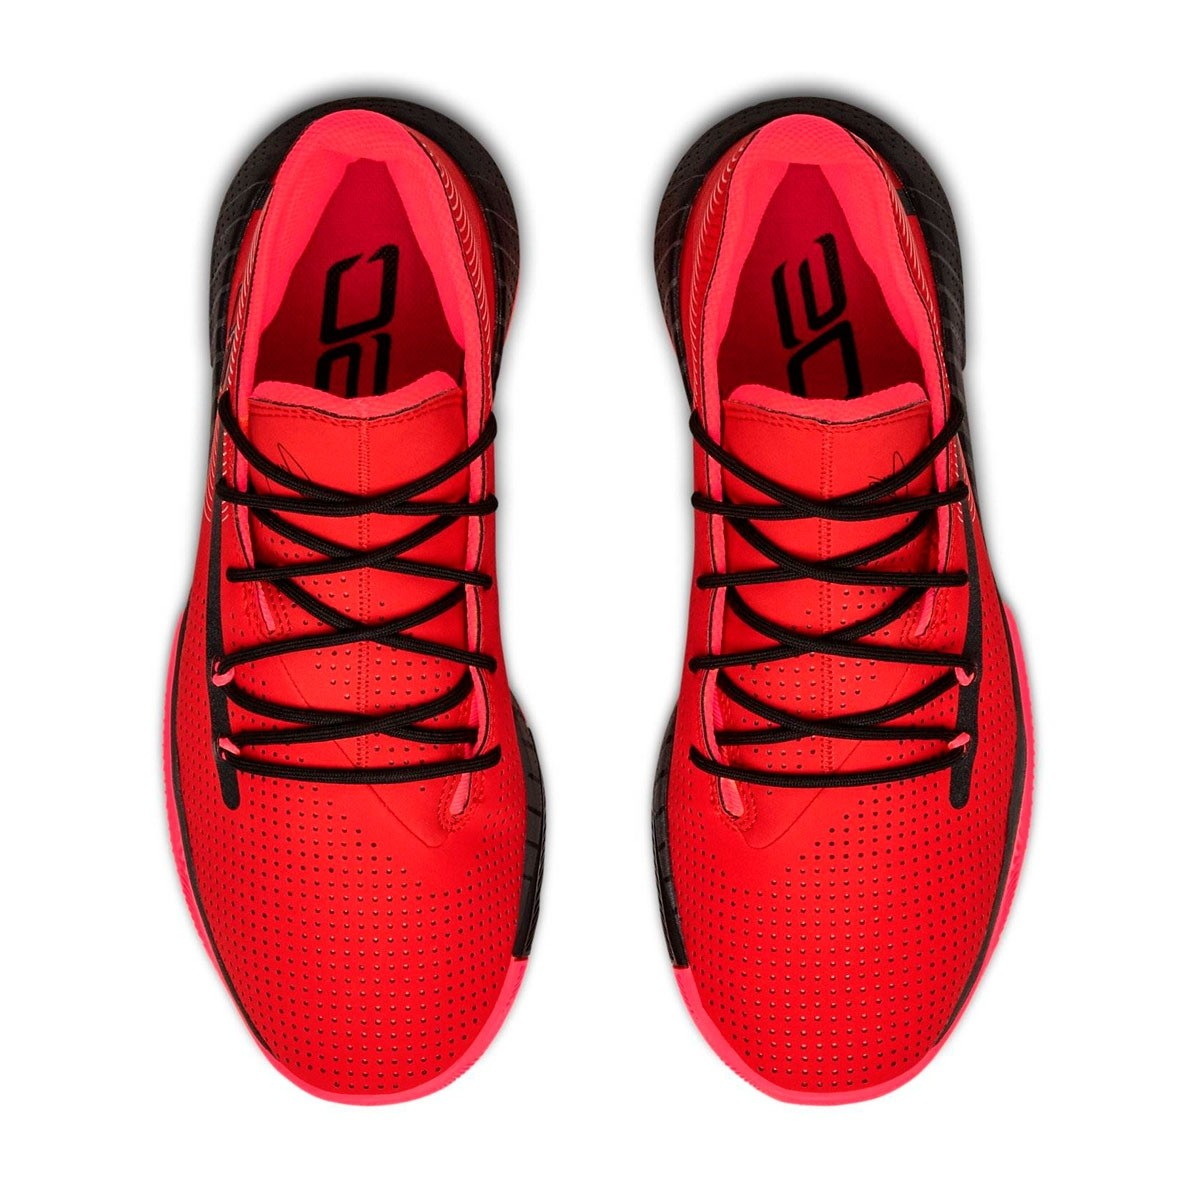 Under Armour SC 3ZER0 III GS 'Red' 3022117-601